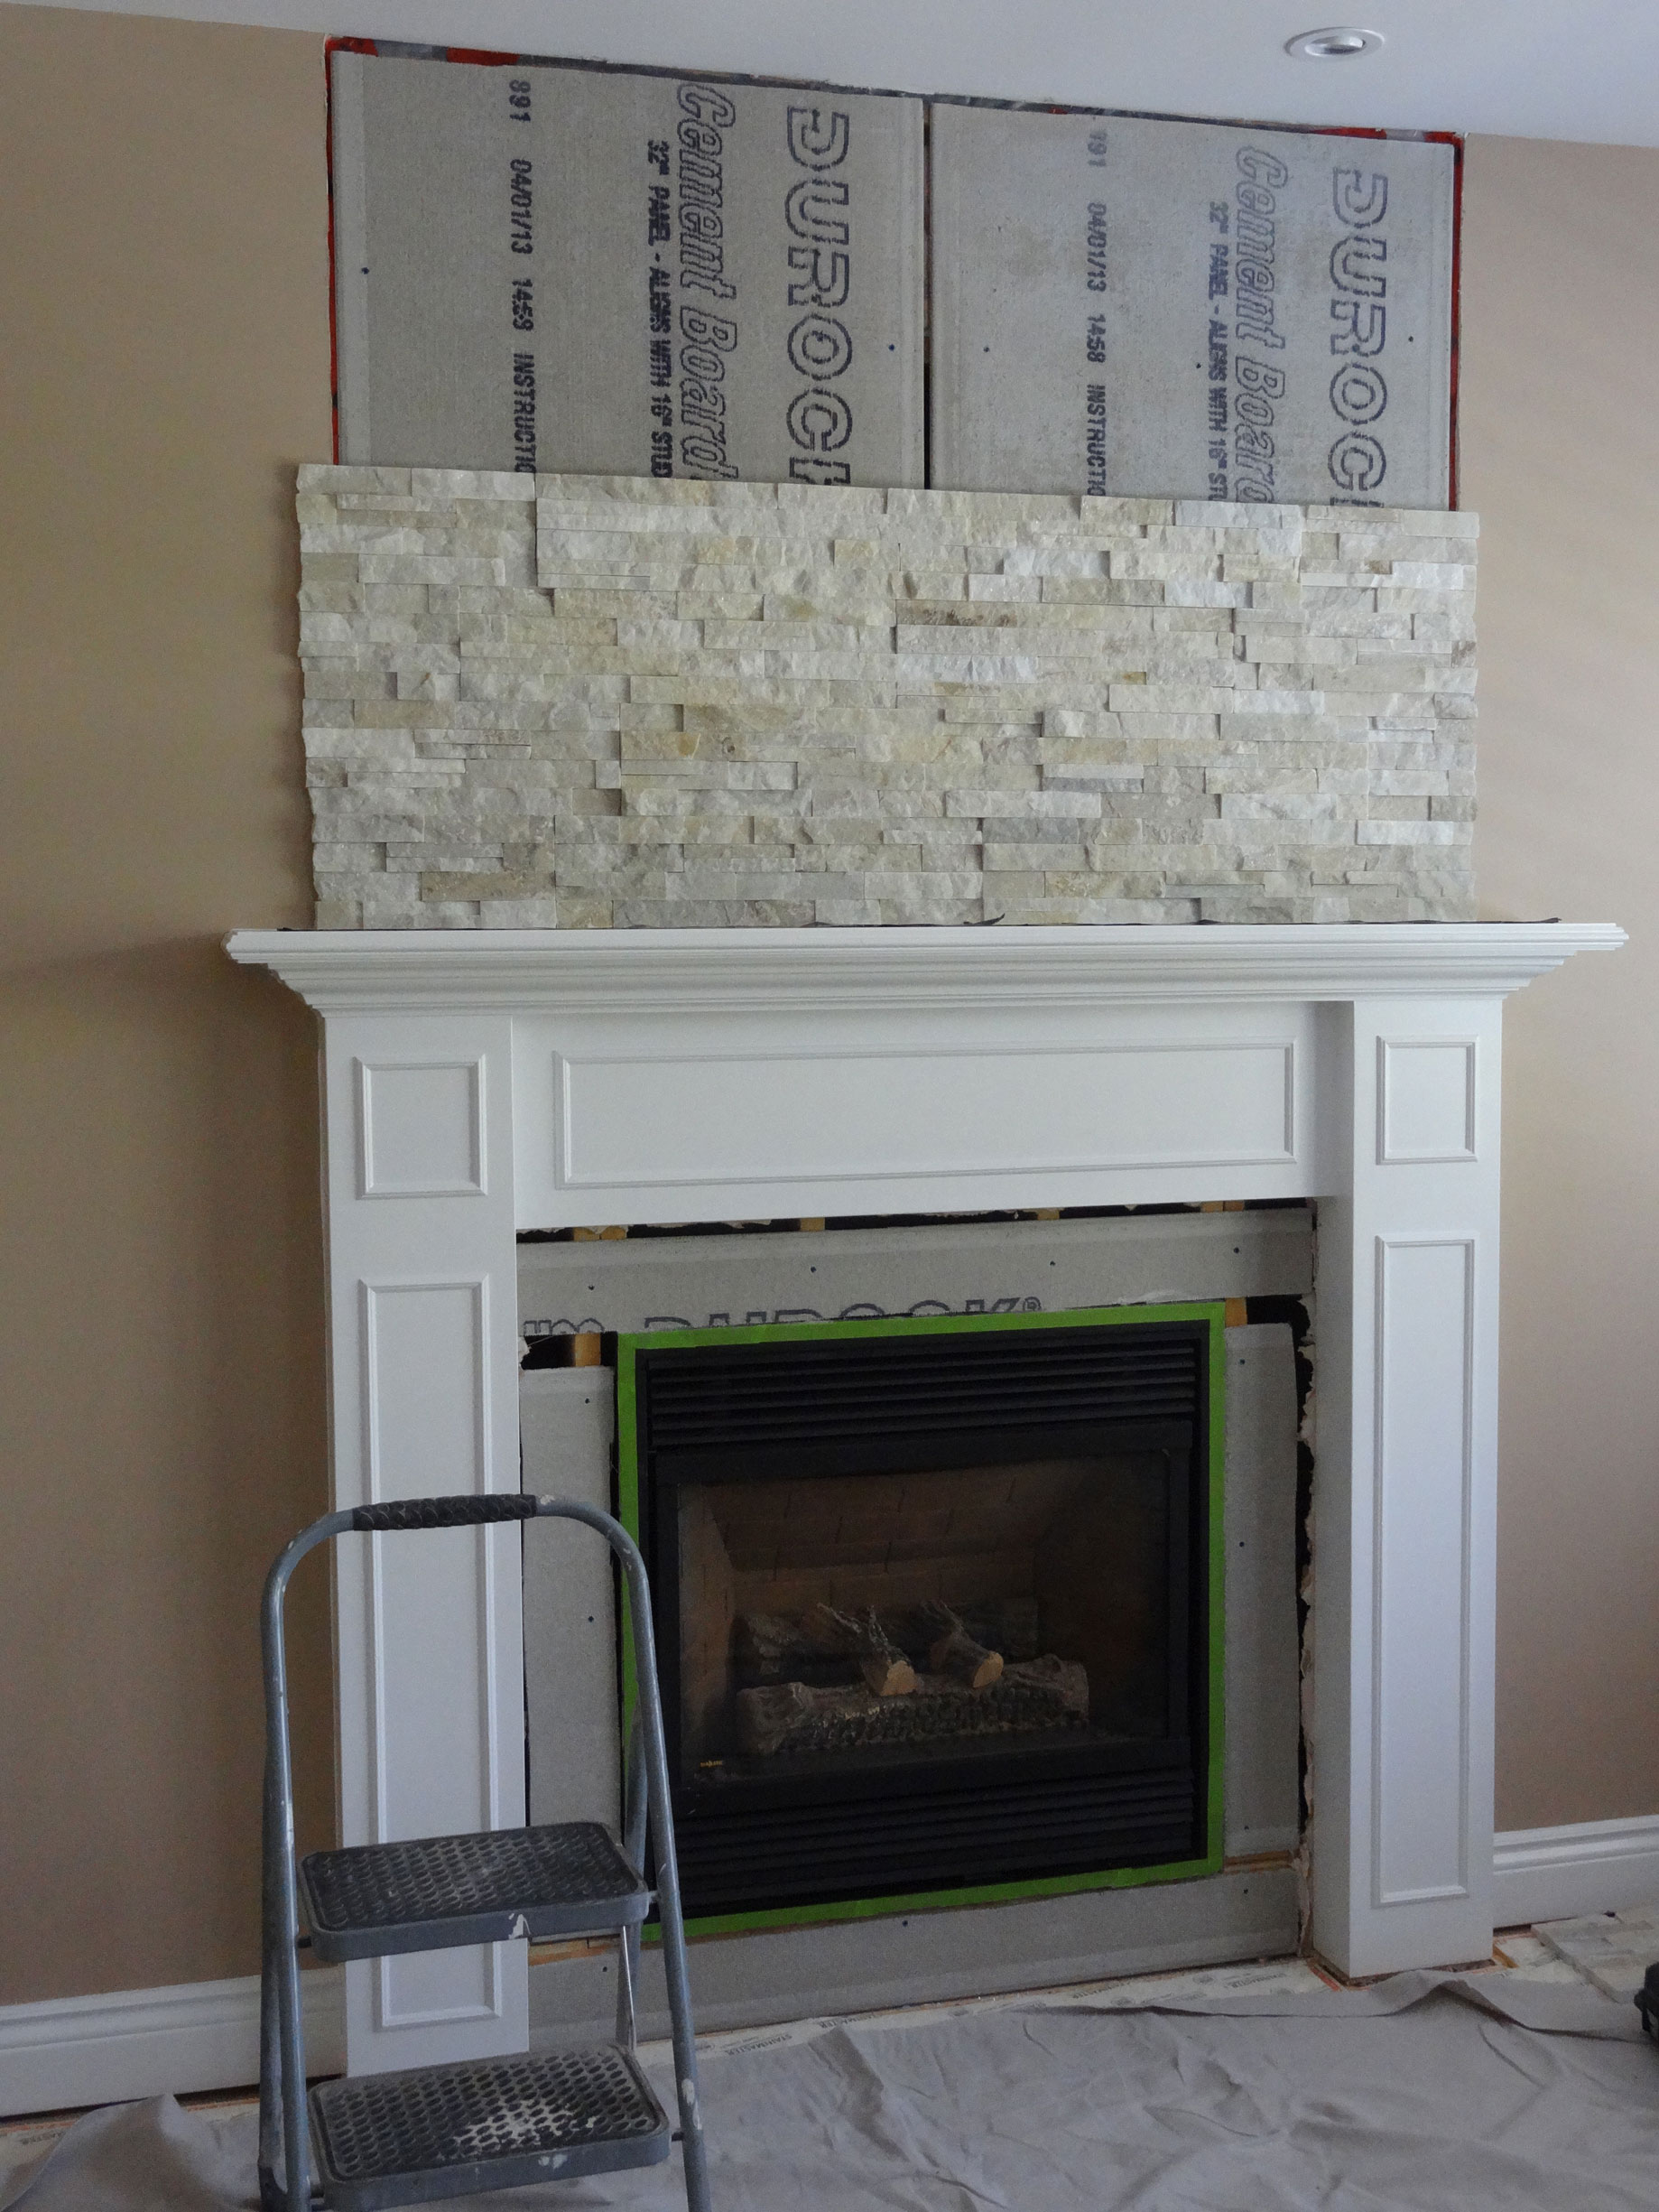 Gas Fireplace Surround Plans Fireplace Restructuring From Wood To Gas - Ottawa Case